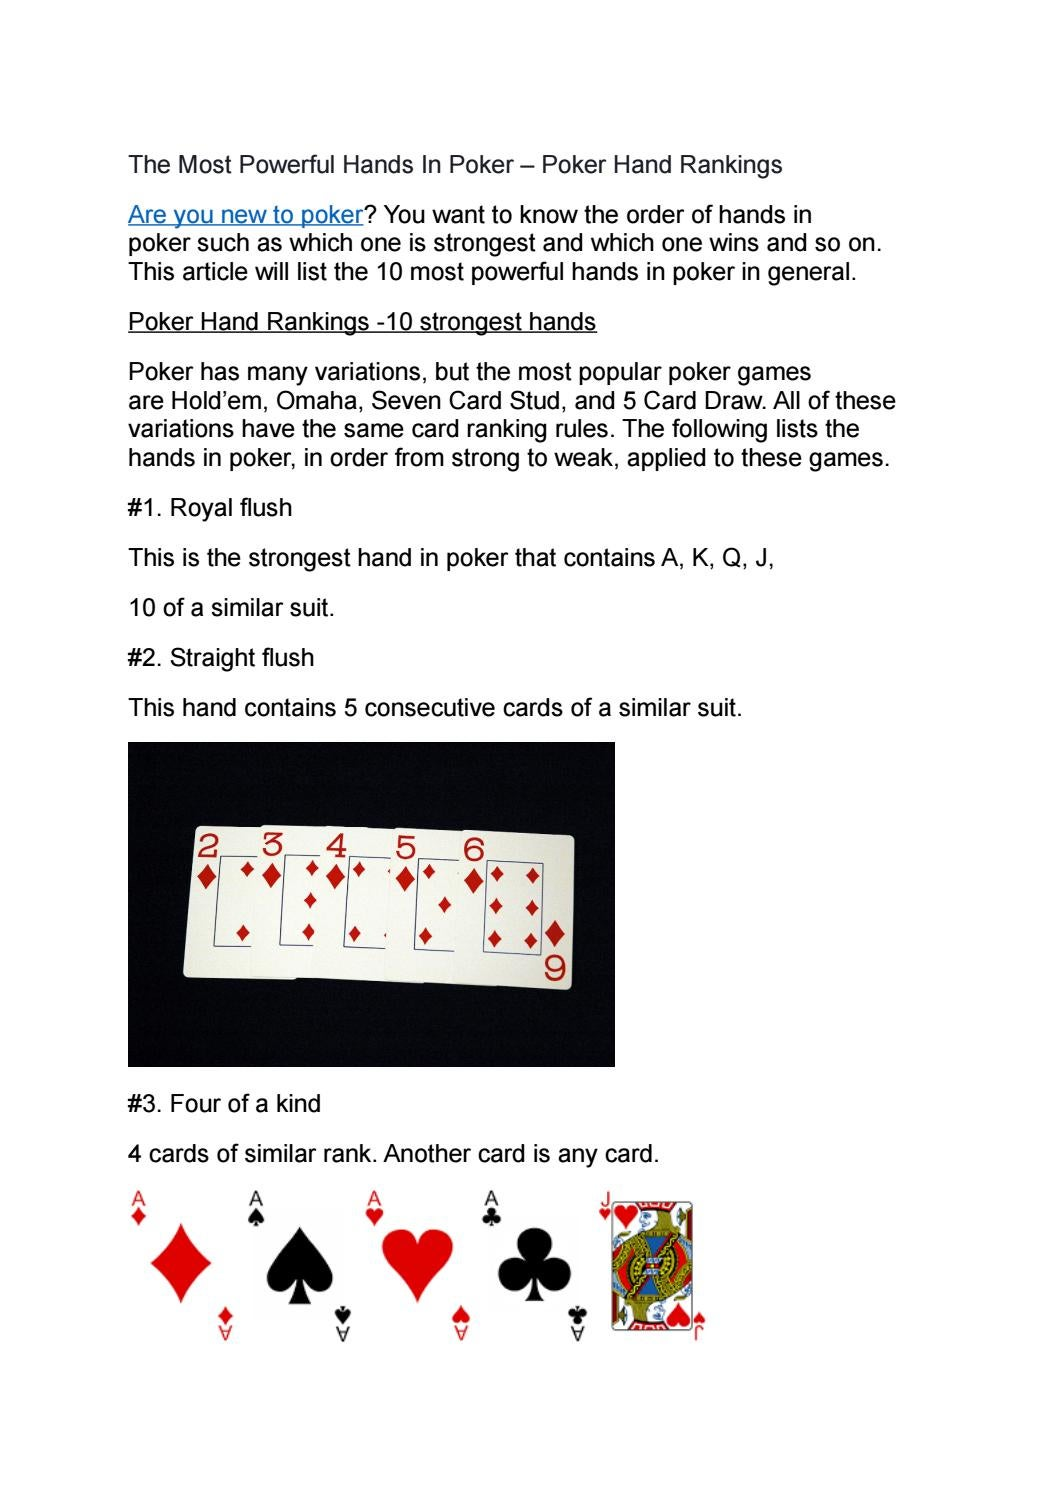 The Most Powerful Hands In Poker Poker Hand Rankings By Gogbetsg Online Casino Singapore Issuu